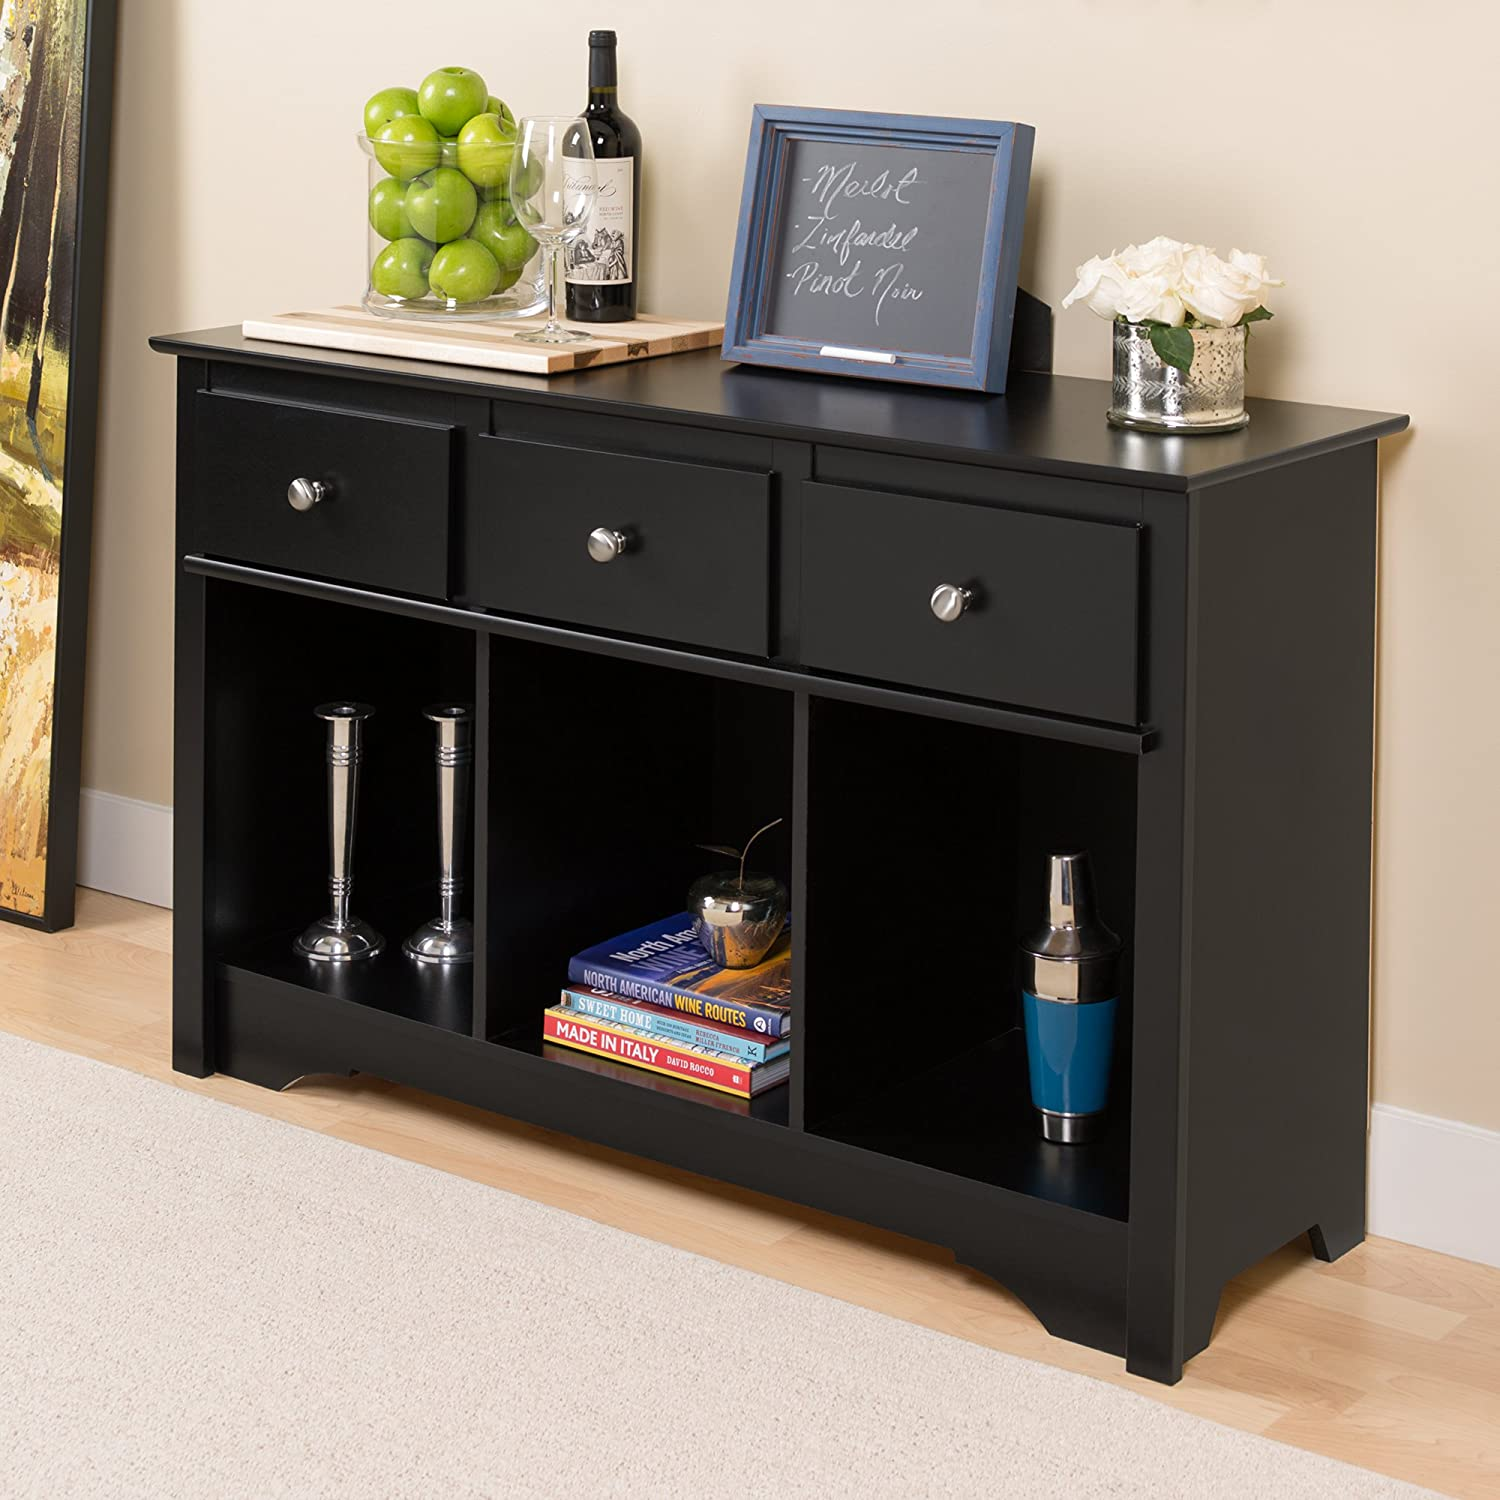 Amazon.com: Black Living Room Console: Kitchen & Dining